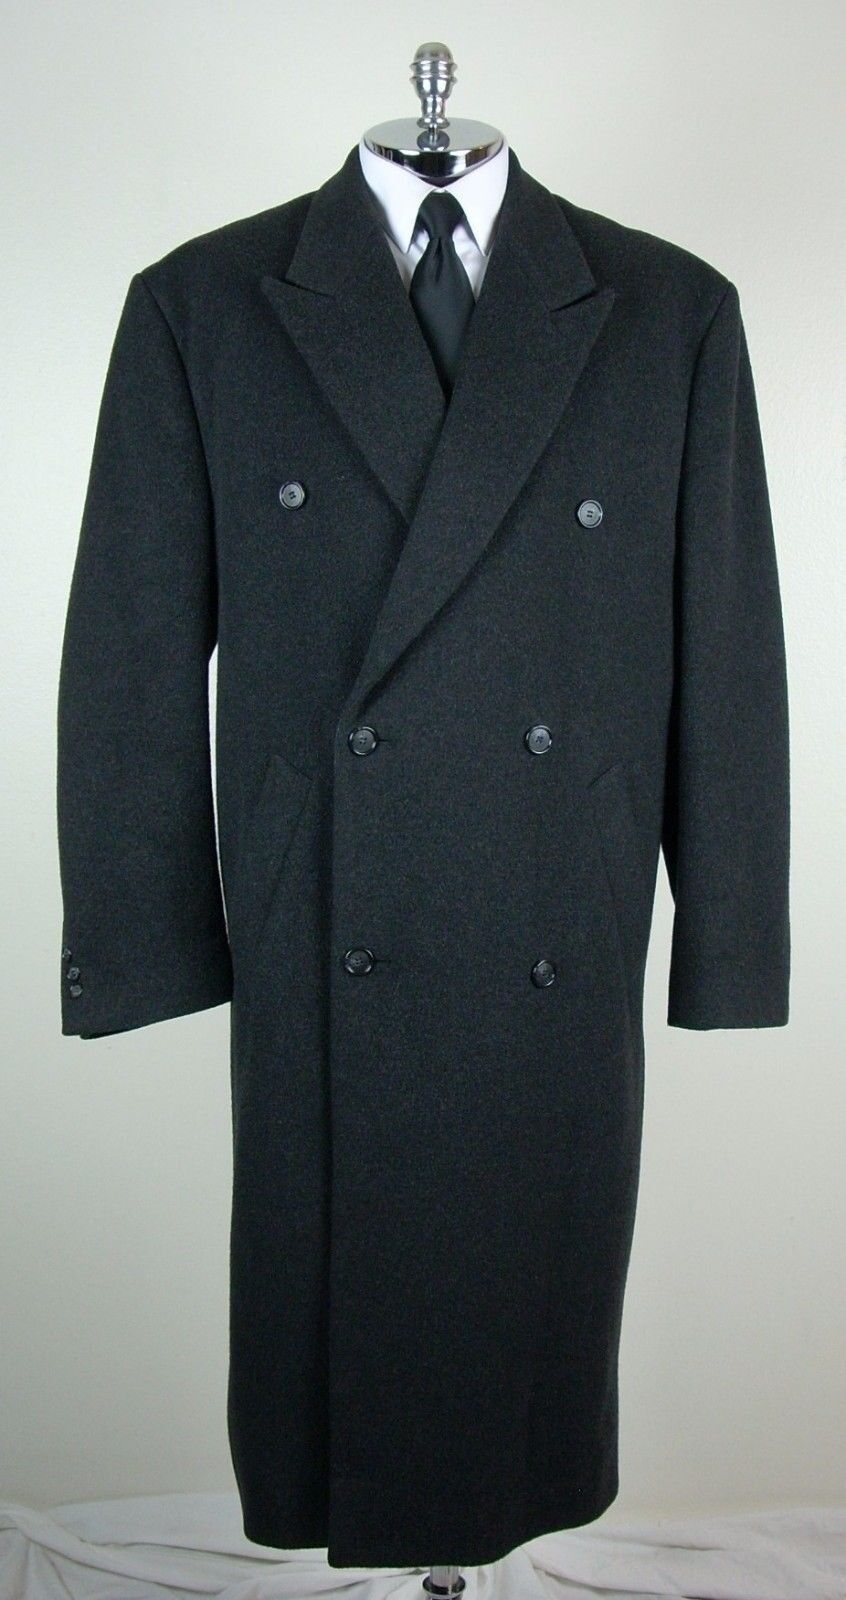 ALFANI / MACY'S  Herren Charcoal WOOL & CASHMERE BLEND Long Coat Größe 44 L